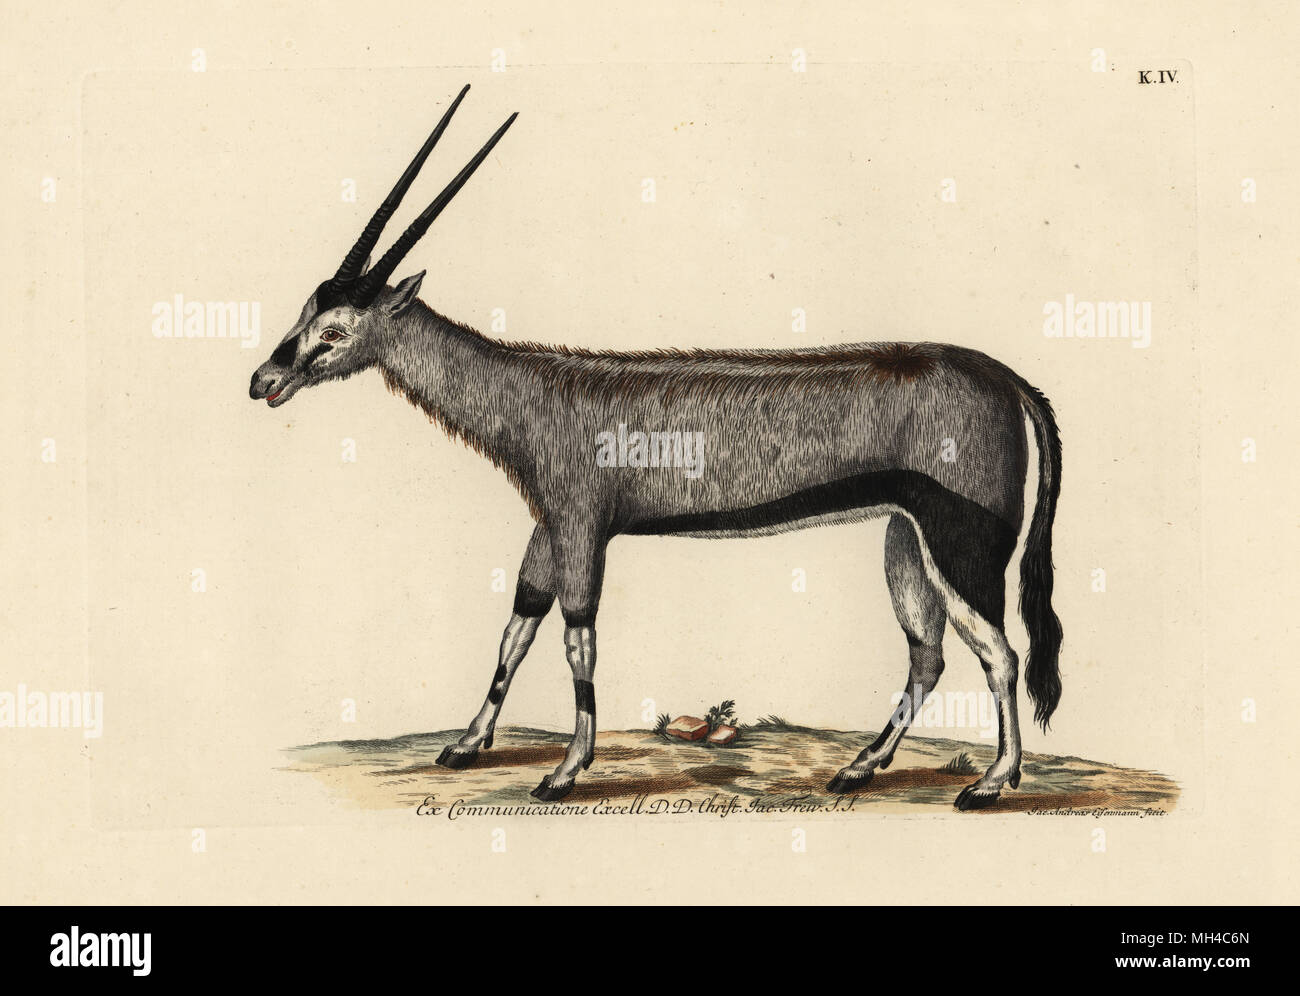 Gemsbok or gemsbuck, Oryx gazella (Chamois d'Afrique). Handcoloured copperplate engraving by Jakob-Andreas Eisemann from Georg Wolfgang Knorr's Deliciae Naturae Selectae of Kabinet van Zeldzaamheden der Natuur, Blusse and Son, Nuremberg, 1771. Specimens from a Wunderkammer or Cabinet of Curiosities owned by Dr. Christoph Jacob Trew in Nuremberg. - Stock Image